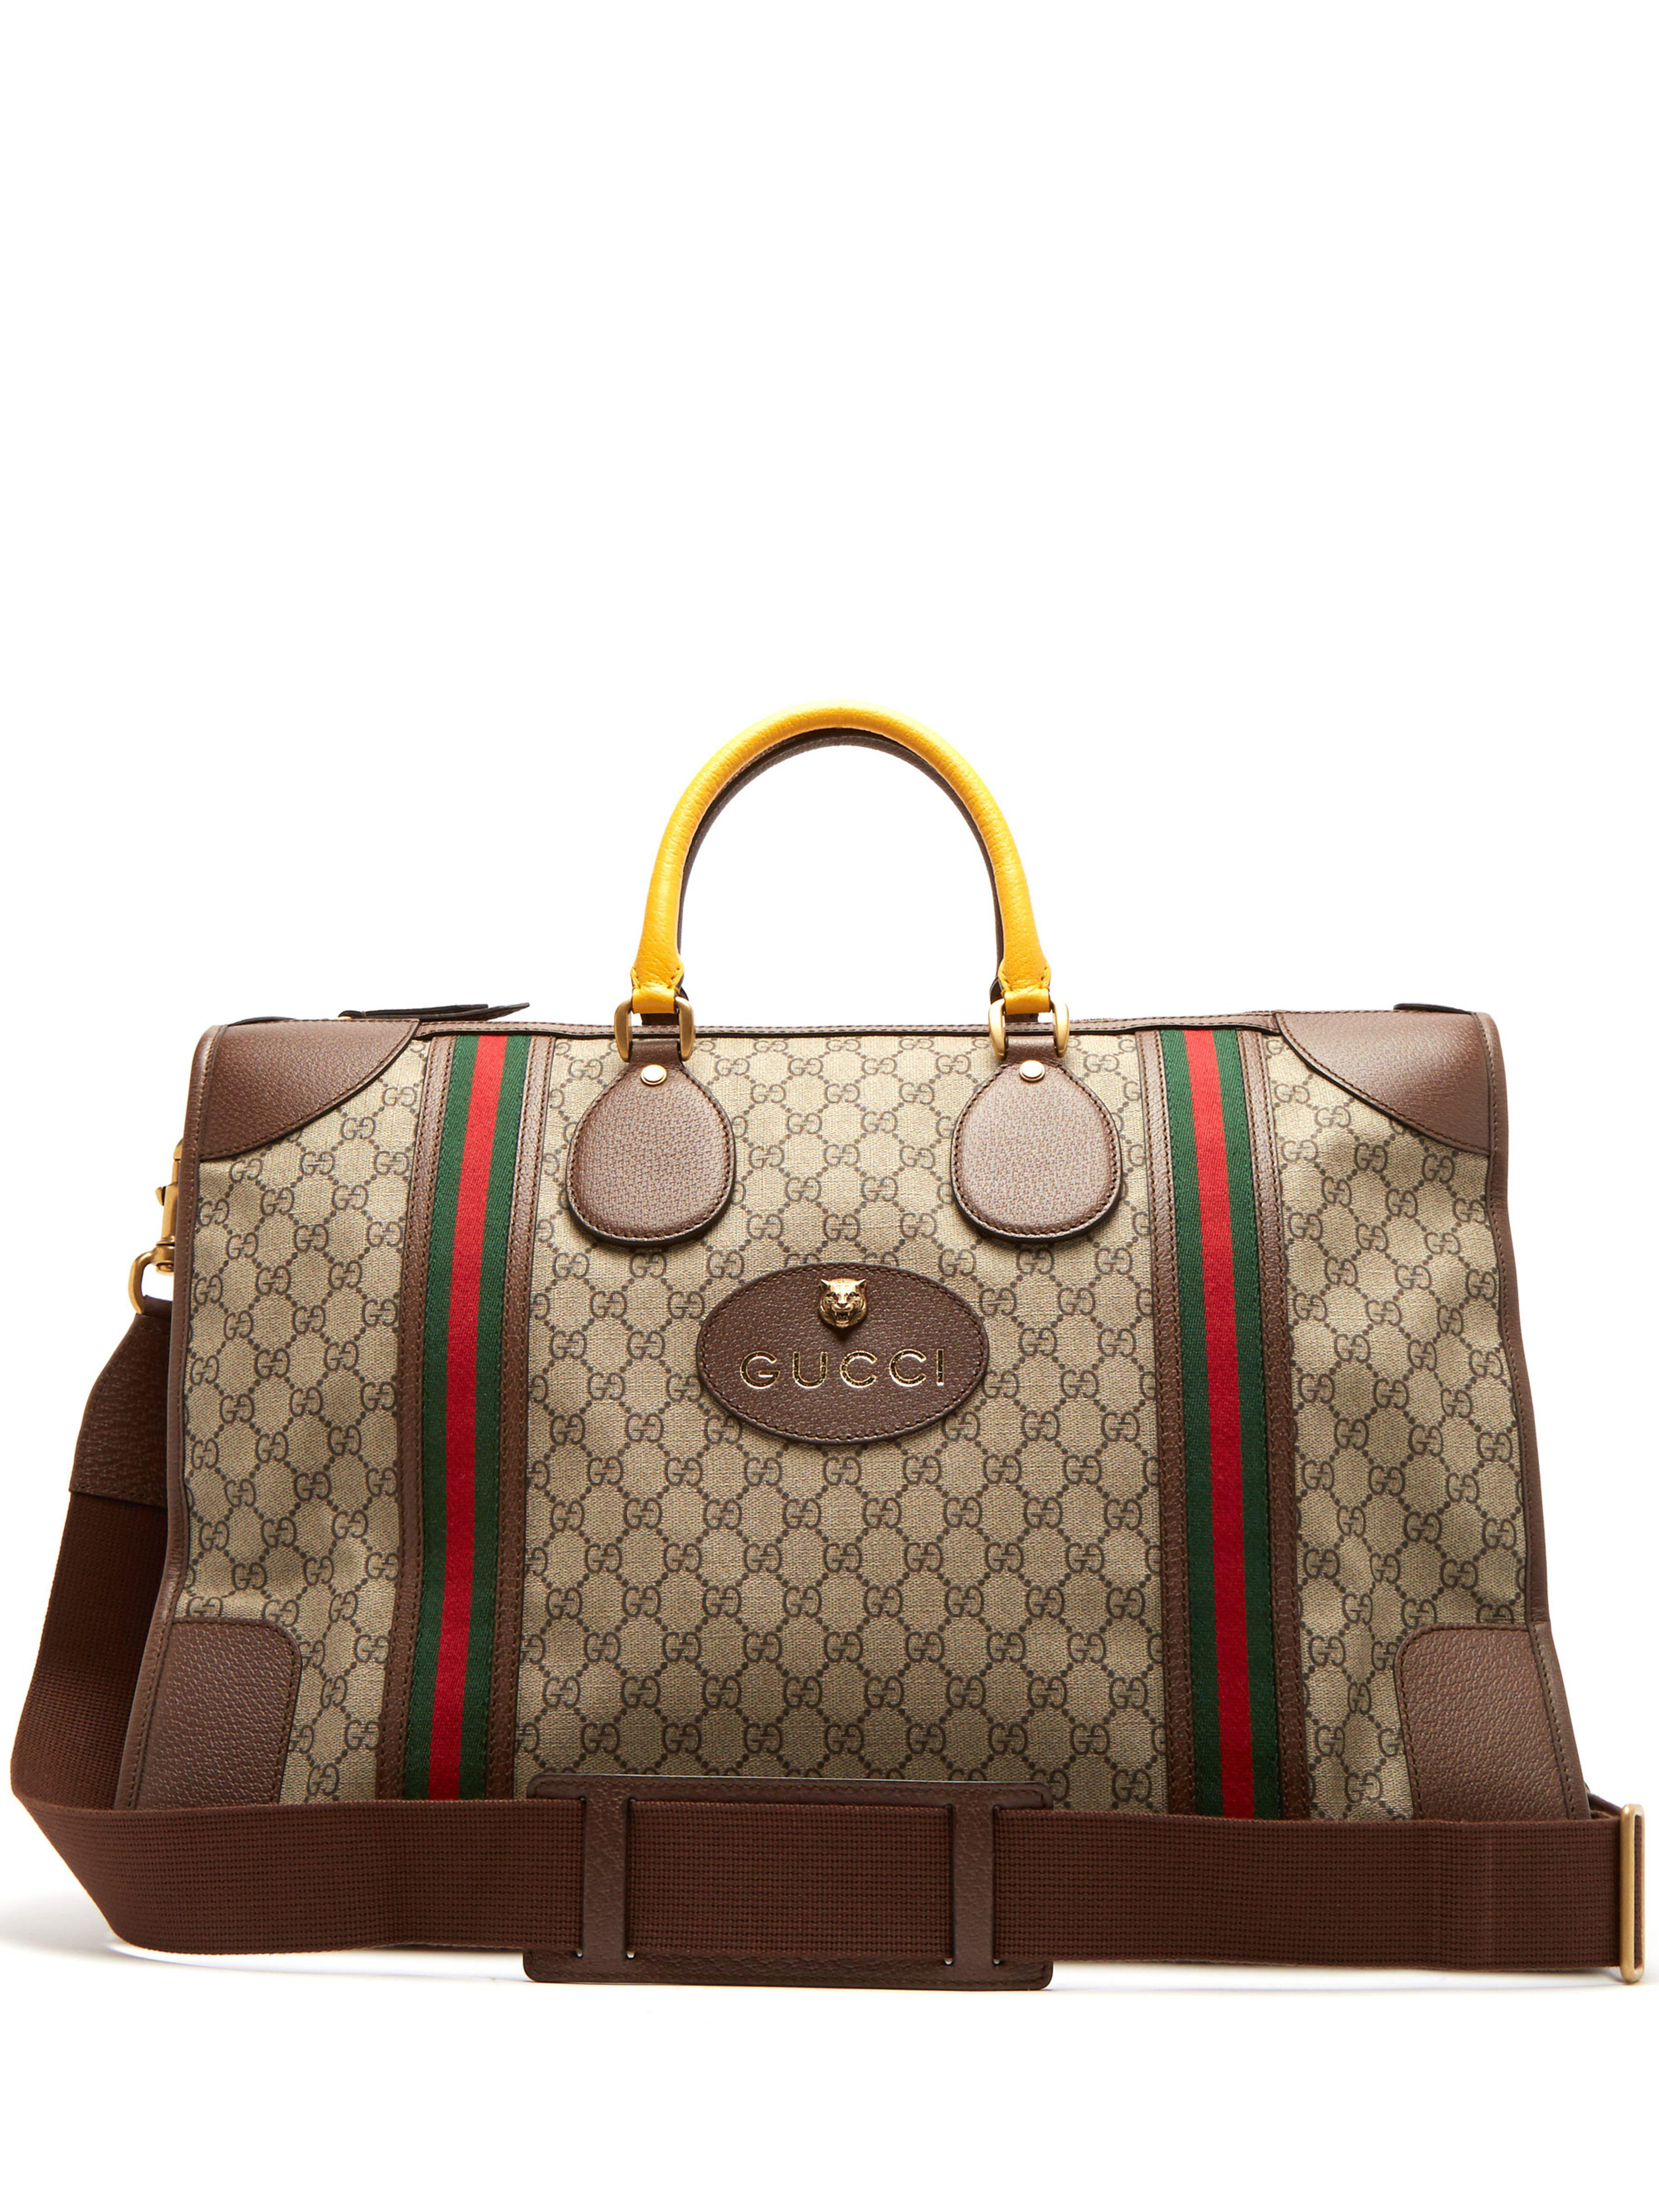 Gucci Gg Supreme Canvas And Leather Holdall in Brown for Men - Save ... 53e35c09c34ca